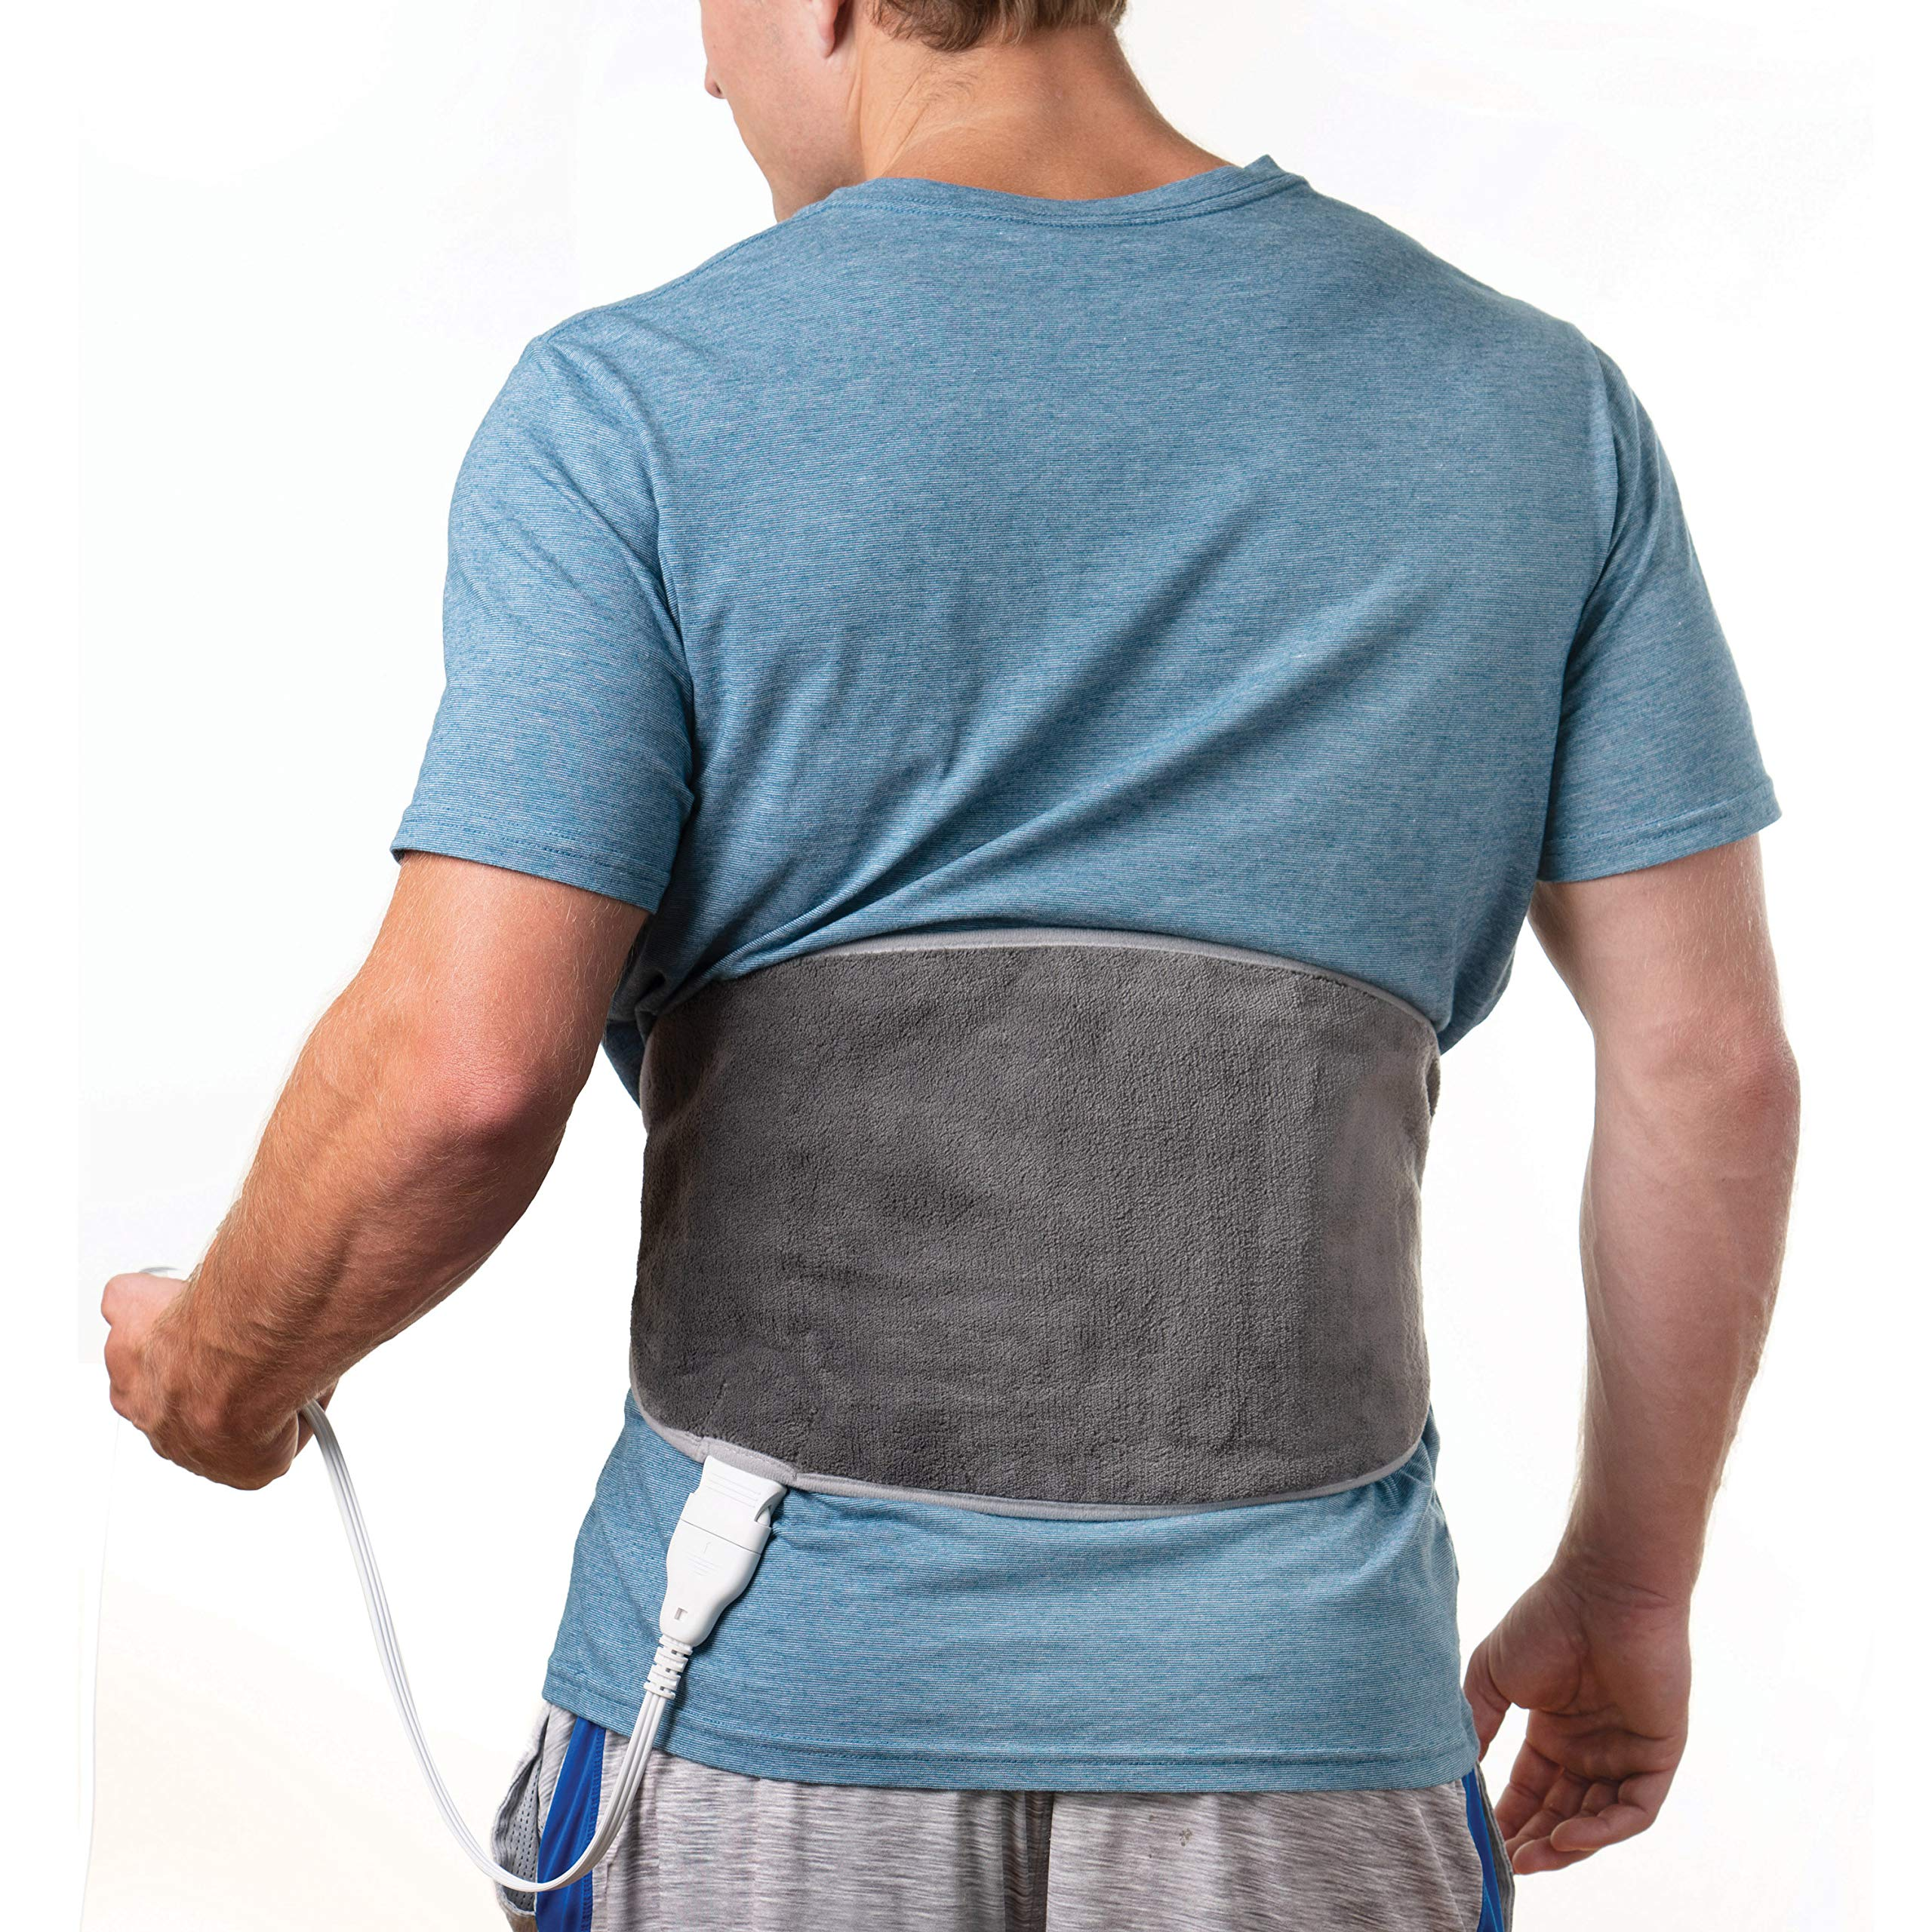 Pure Enrichment PureRelief Lumbar & Abdominal Heat Paid - Fast-Heating Technology with 4 Heat Settings, Adjustable Belt, Hot/Cold Gel Pack & Storage Bag - Ideal for Back Pain & Abdominal Cramps, Gray by Pure Enrichment